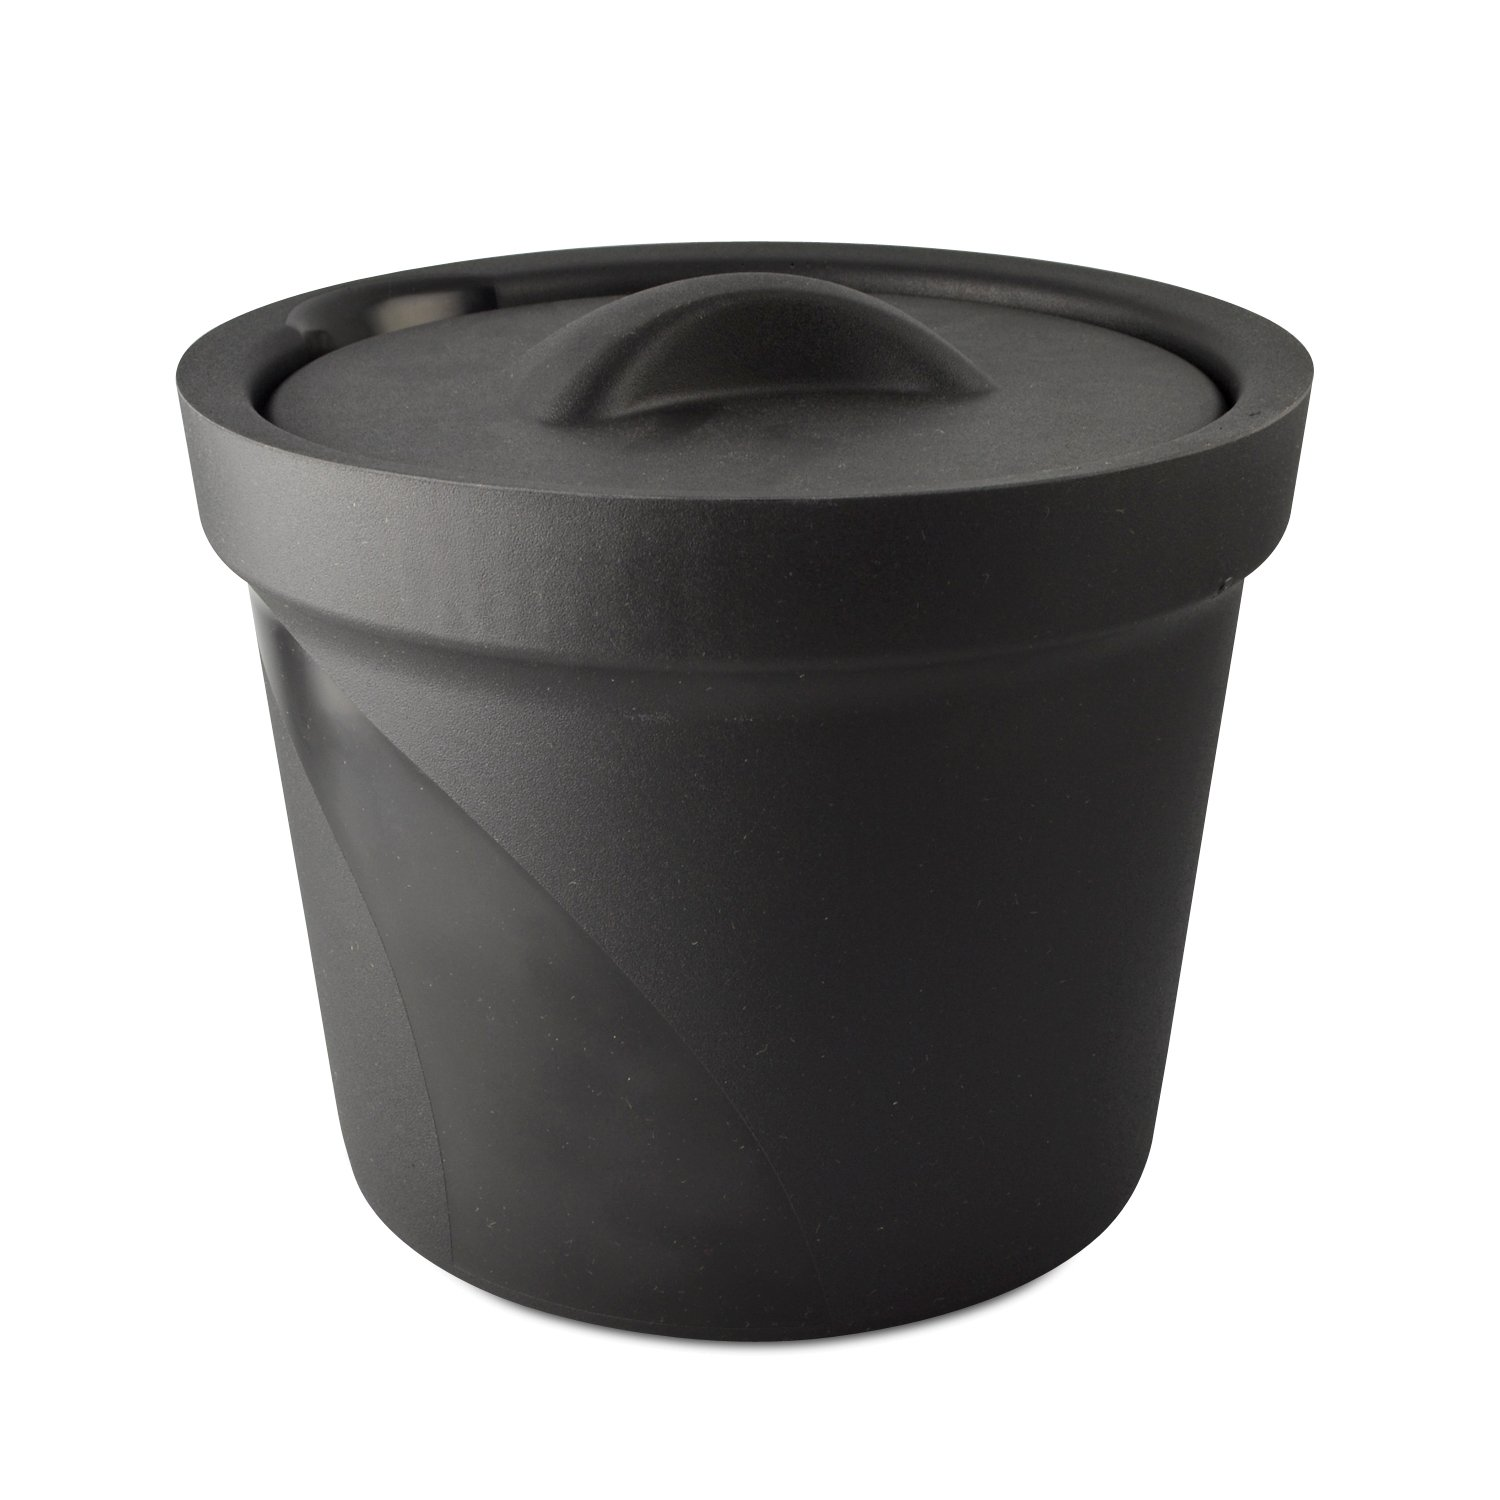 Bel-Art Magic Touch 2 High Performance Black Ice Bucket; 4.0 Liter, With Lid (M16807-4002)